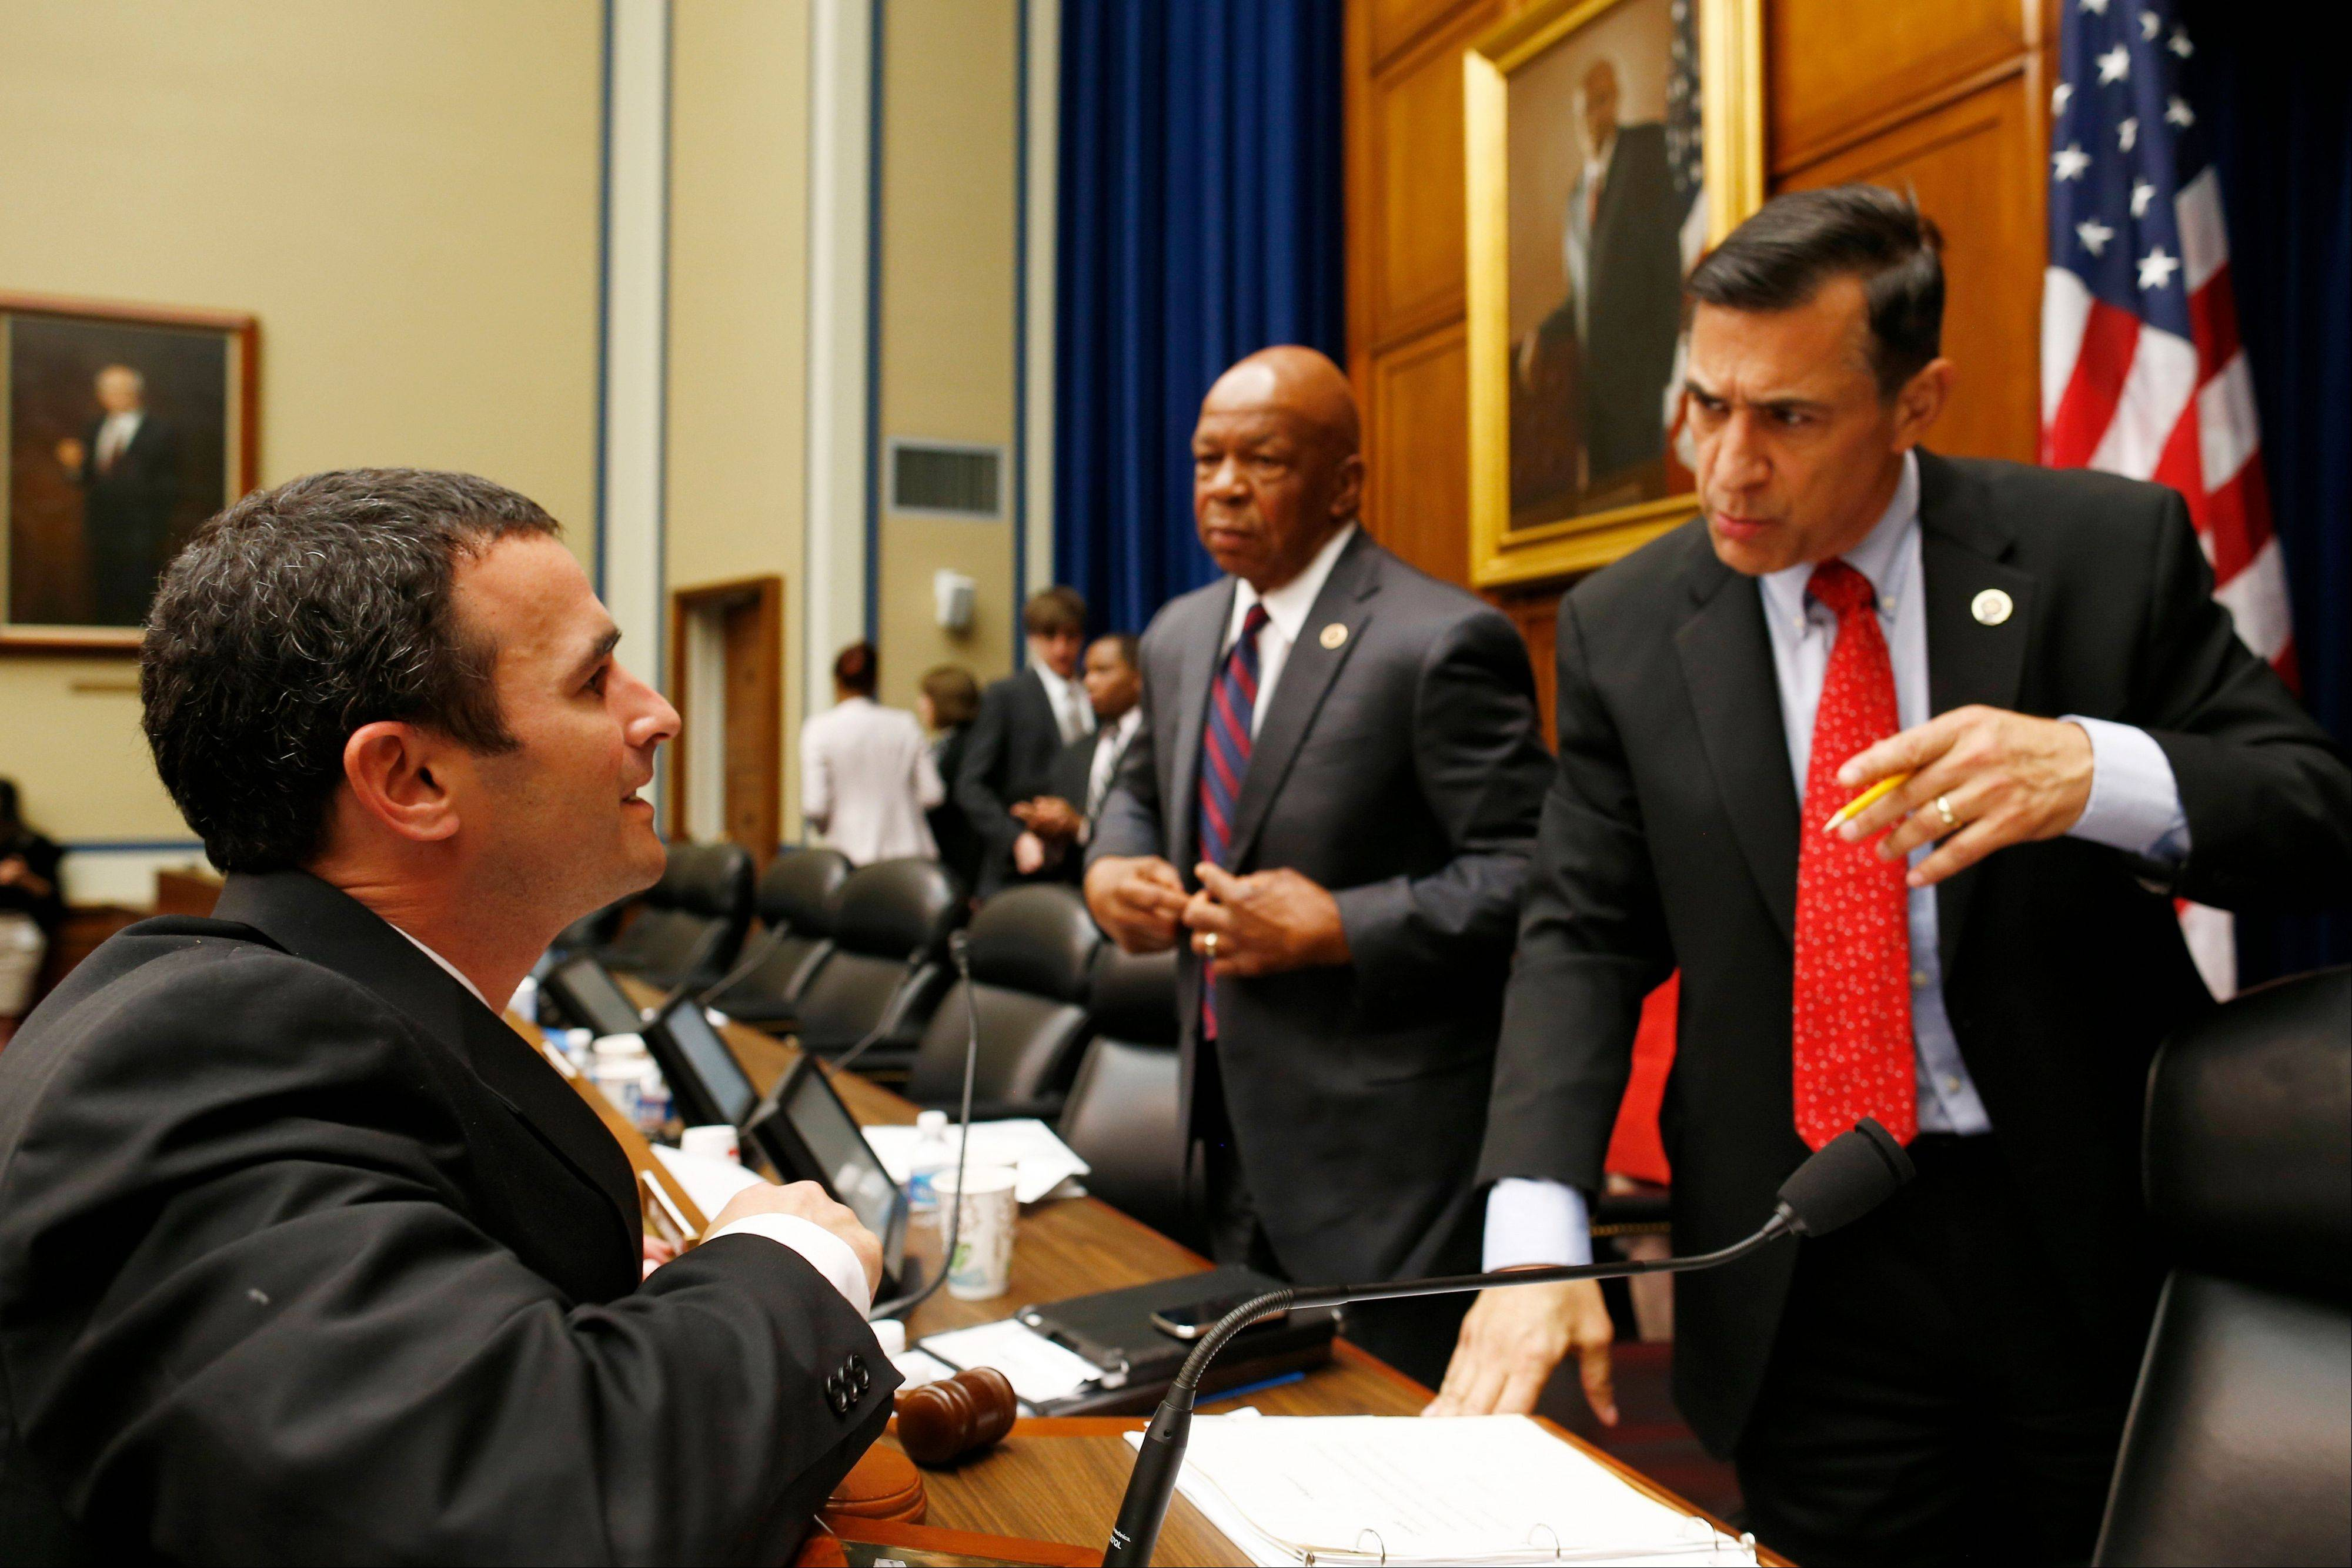 Acting IRS commissioner Danny Werfel, left, talks Thursday with House Oversight and Government Reform Committee Chairman Rep. Darrell Issa, a California Republican, right, accompanied by the committee's ranking Democrat Rep. Elijah Cummings, a Maryland Democrat, on Capitol Hill in Washington after he testified before the committee's hearing regarding IRS conference spending.